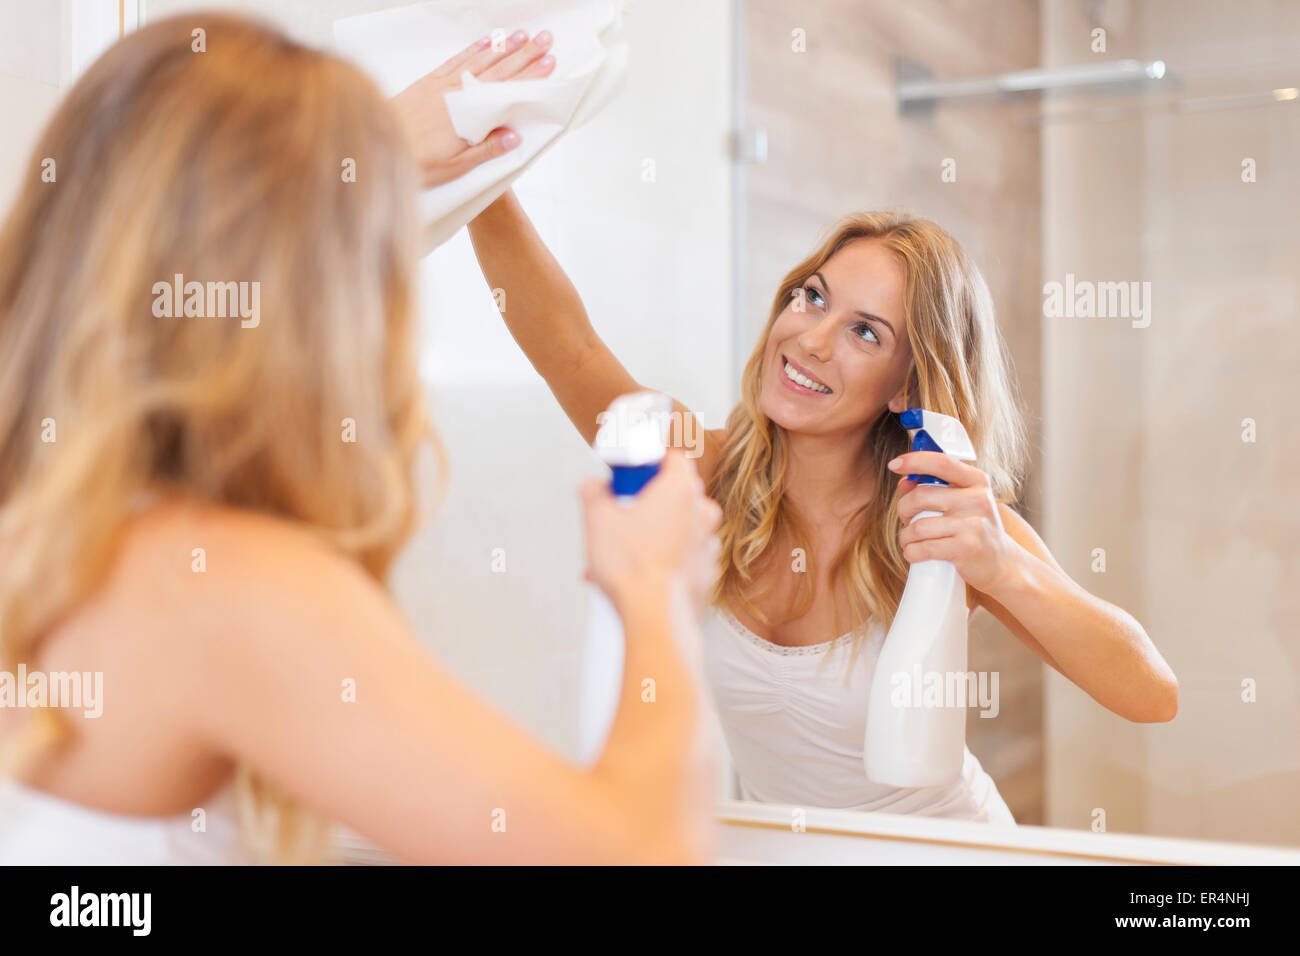 How to clean bathroom mirror - Young Blonde Woman Cleaning Mirror In Bathroom Debica Poland Stock Image